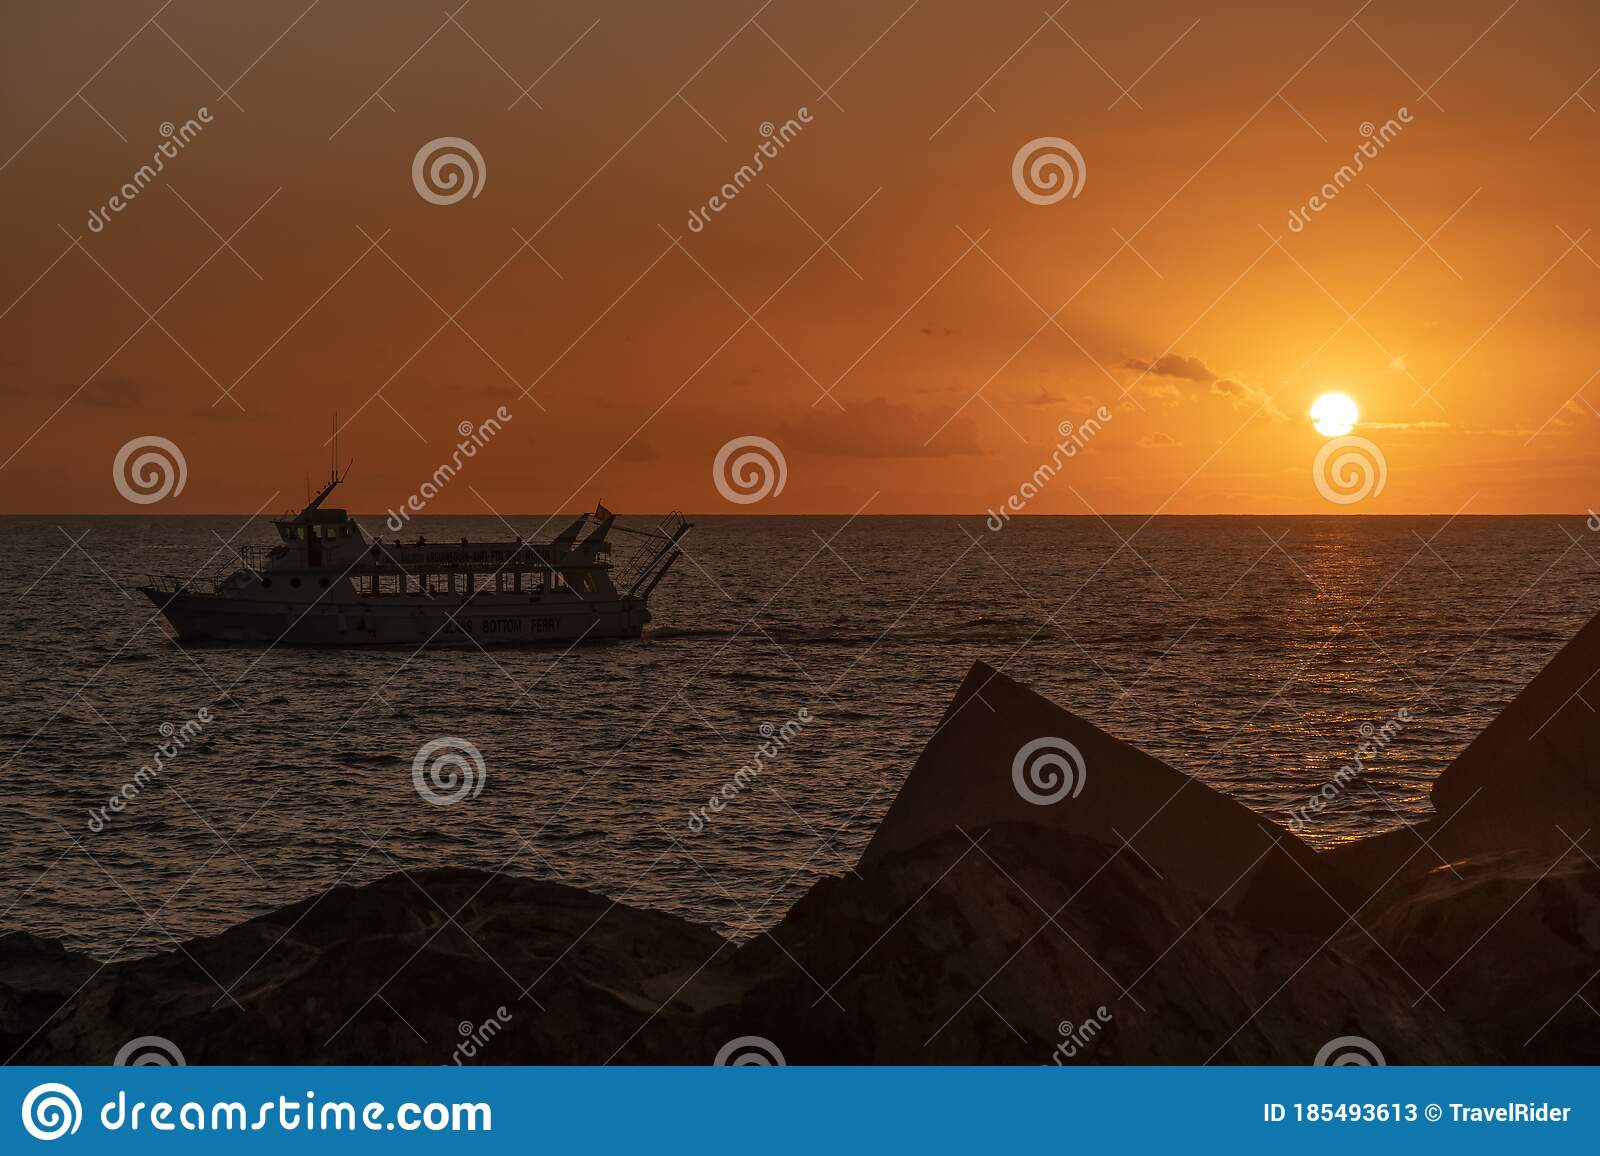 Amazing Sunset Rocks And Stones At Foreground And Glass Bottom Boat Passing Stock Image Image Of Dusk Nature 185493613